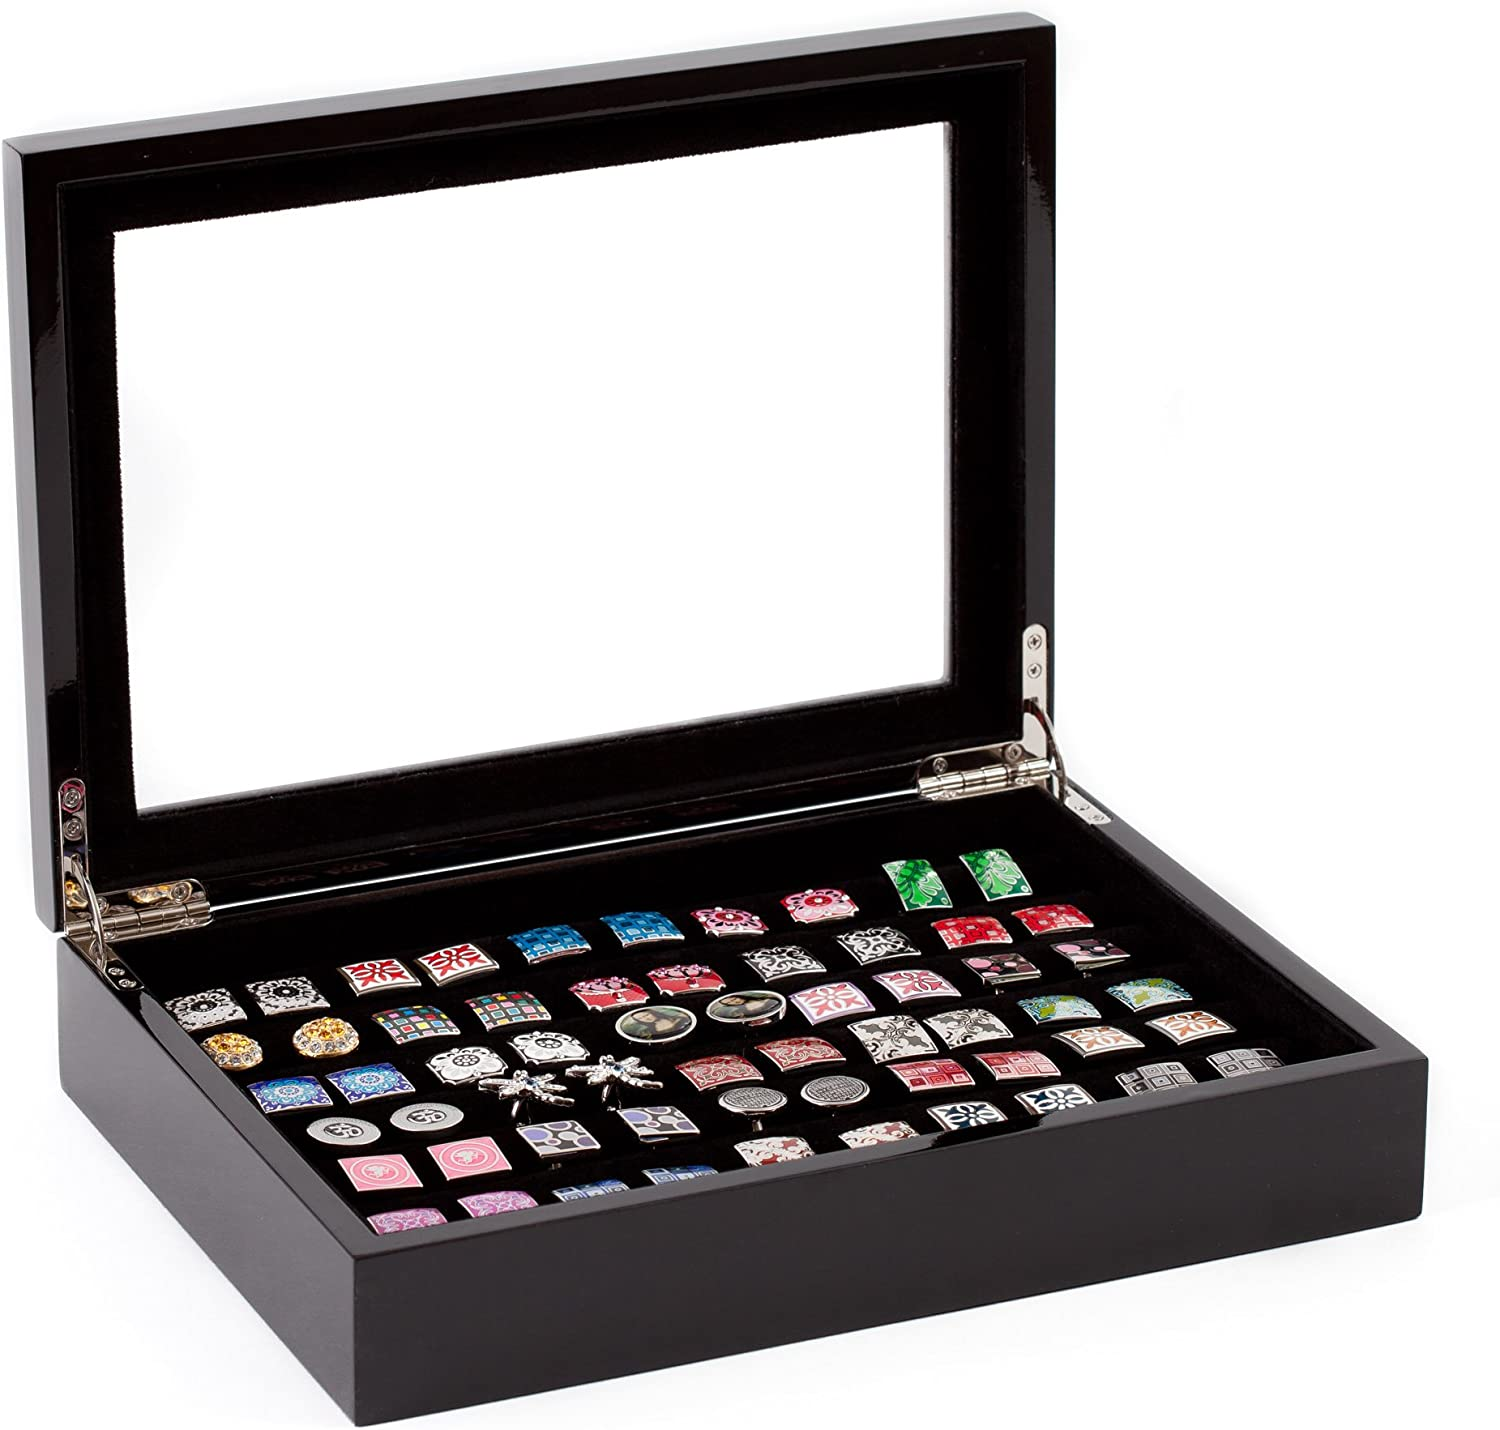 Cuff-Daddy Black Cufflinks and Rings Storage Box/Case (Holds 36 Pairs)